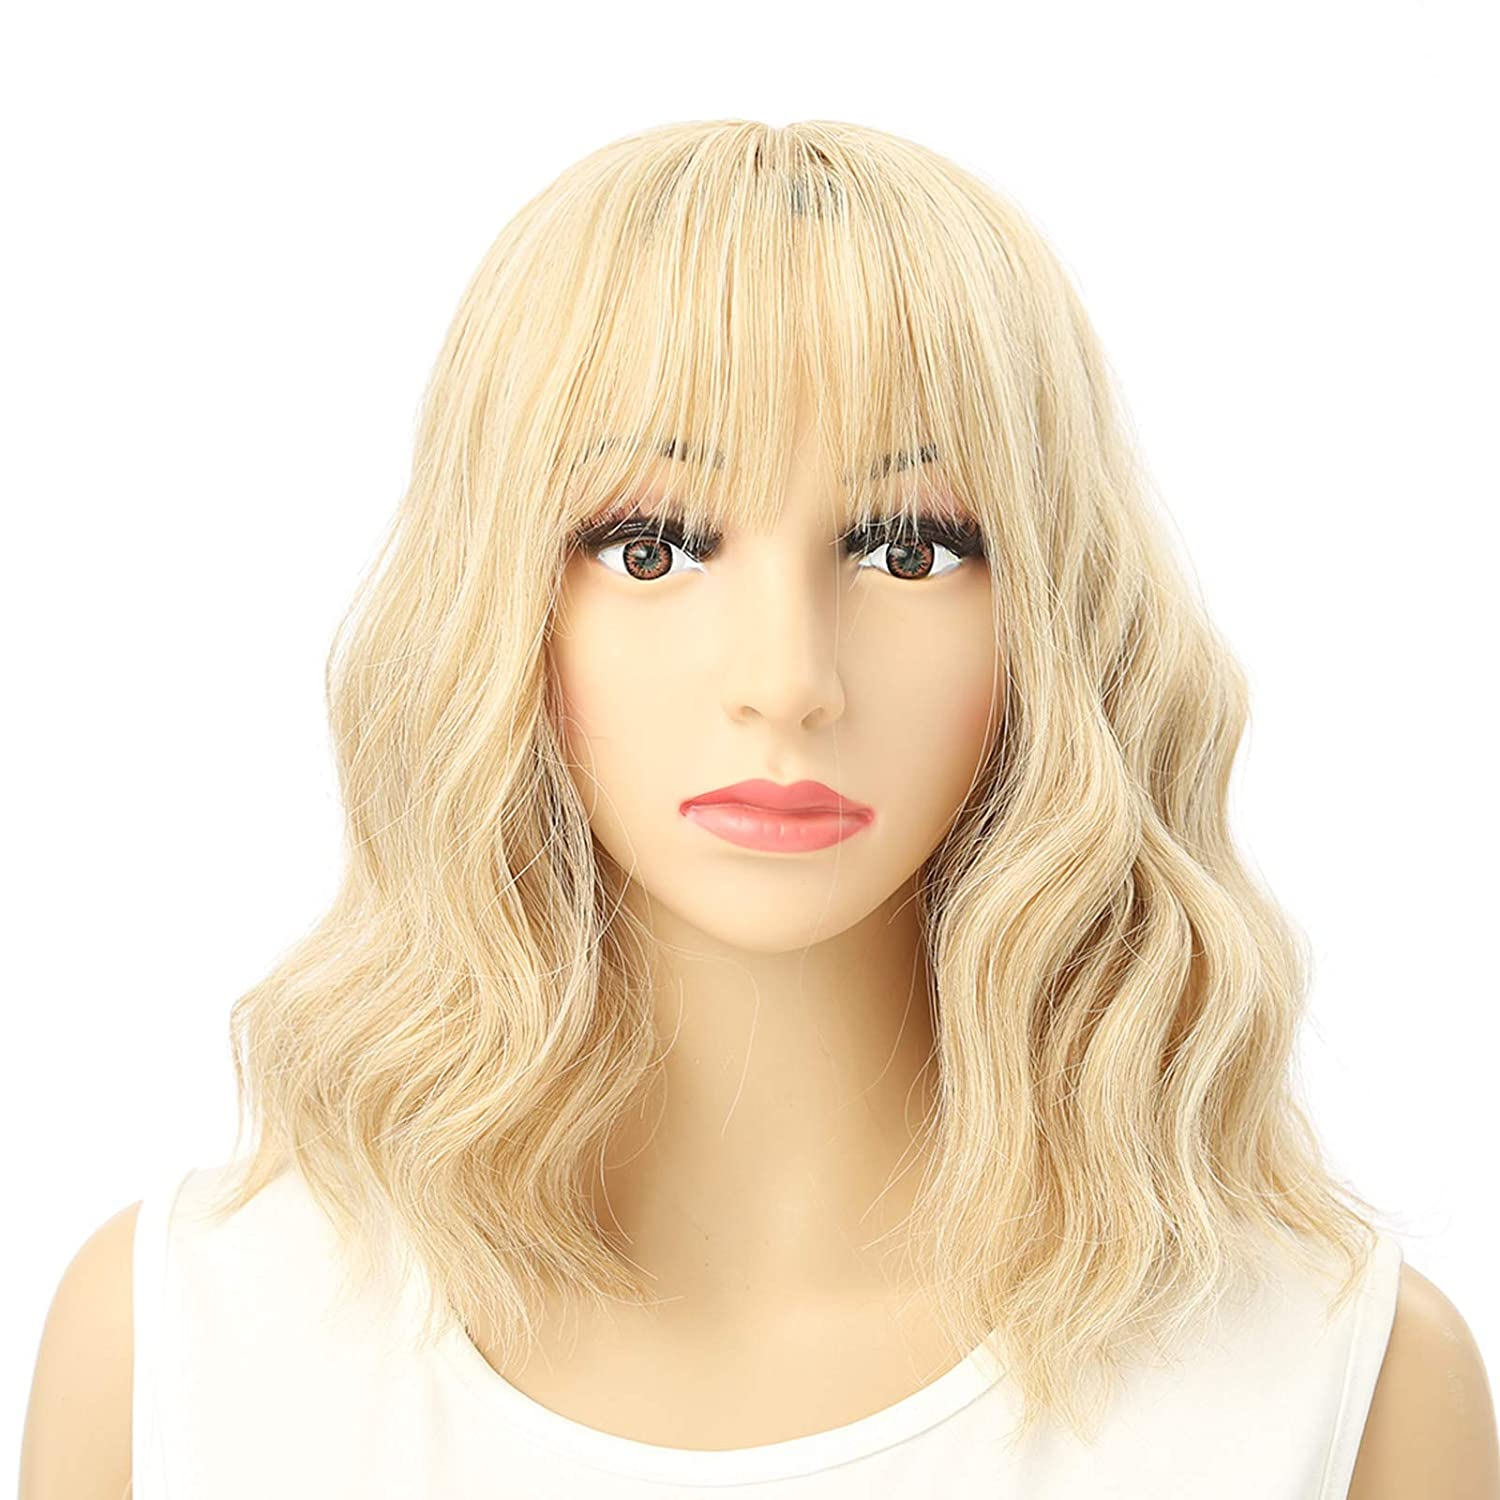 VRbeatter Latest item Blonde Wig Short Bob Wigs Bags Shouder With L Air Finally resale start